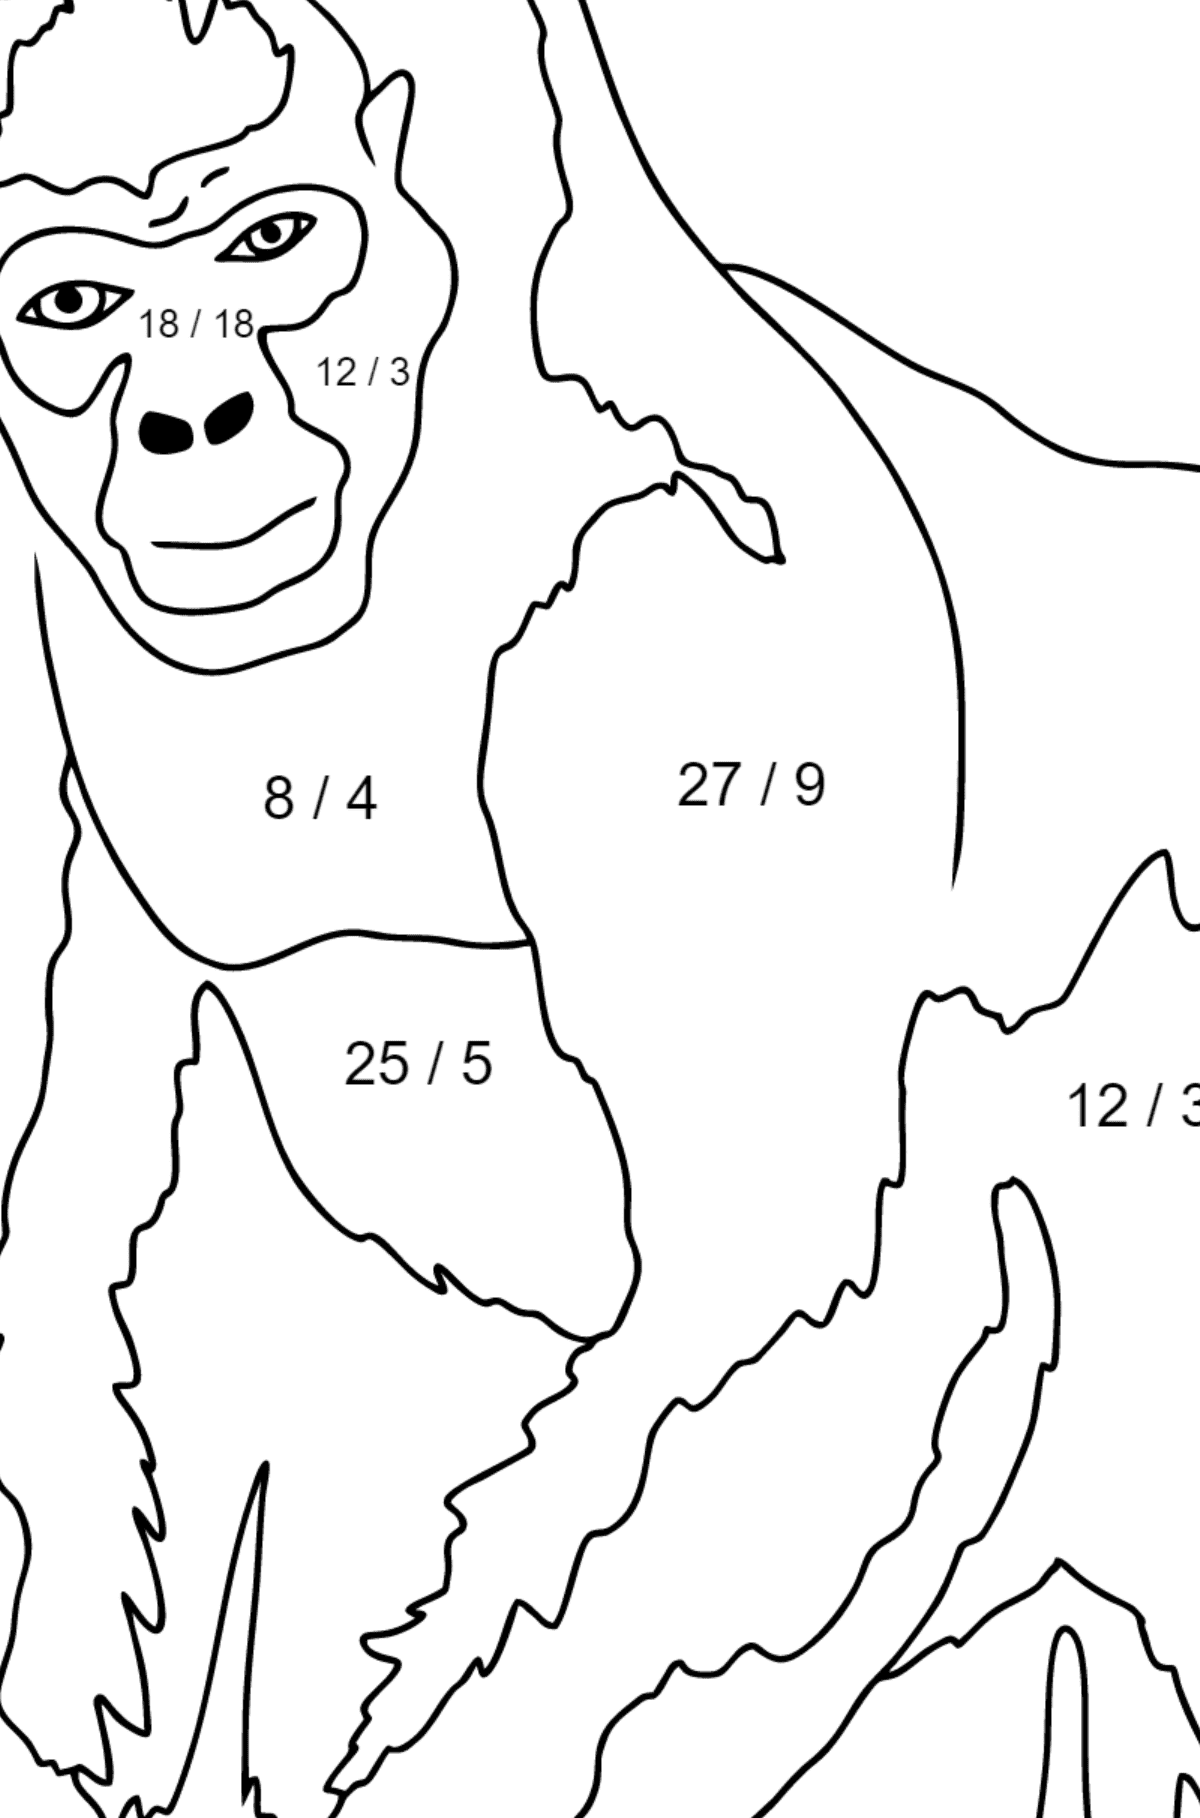 Coloring Page - A Real Gorilla - Math Coloring - Division for Kids